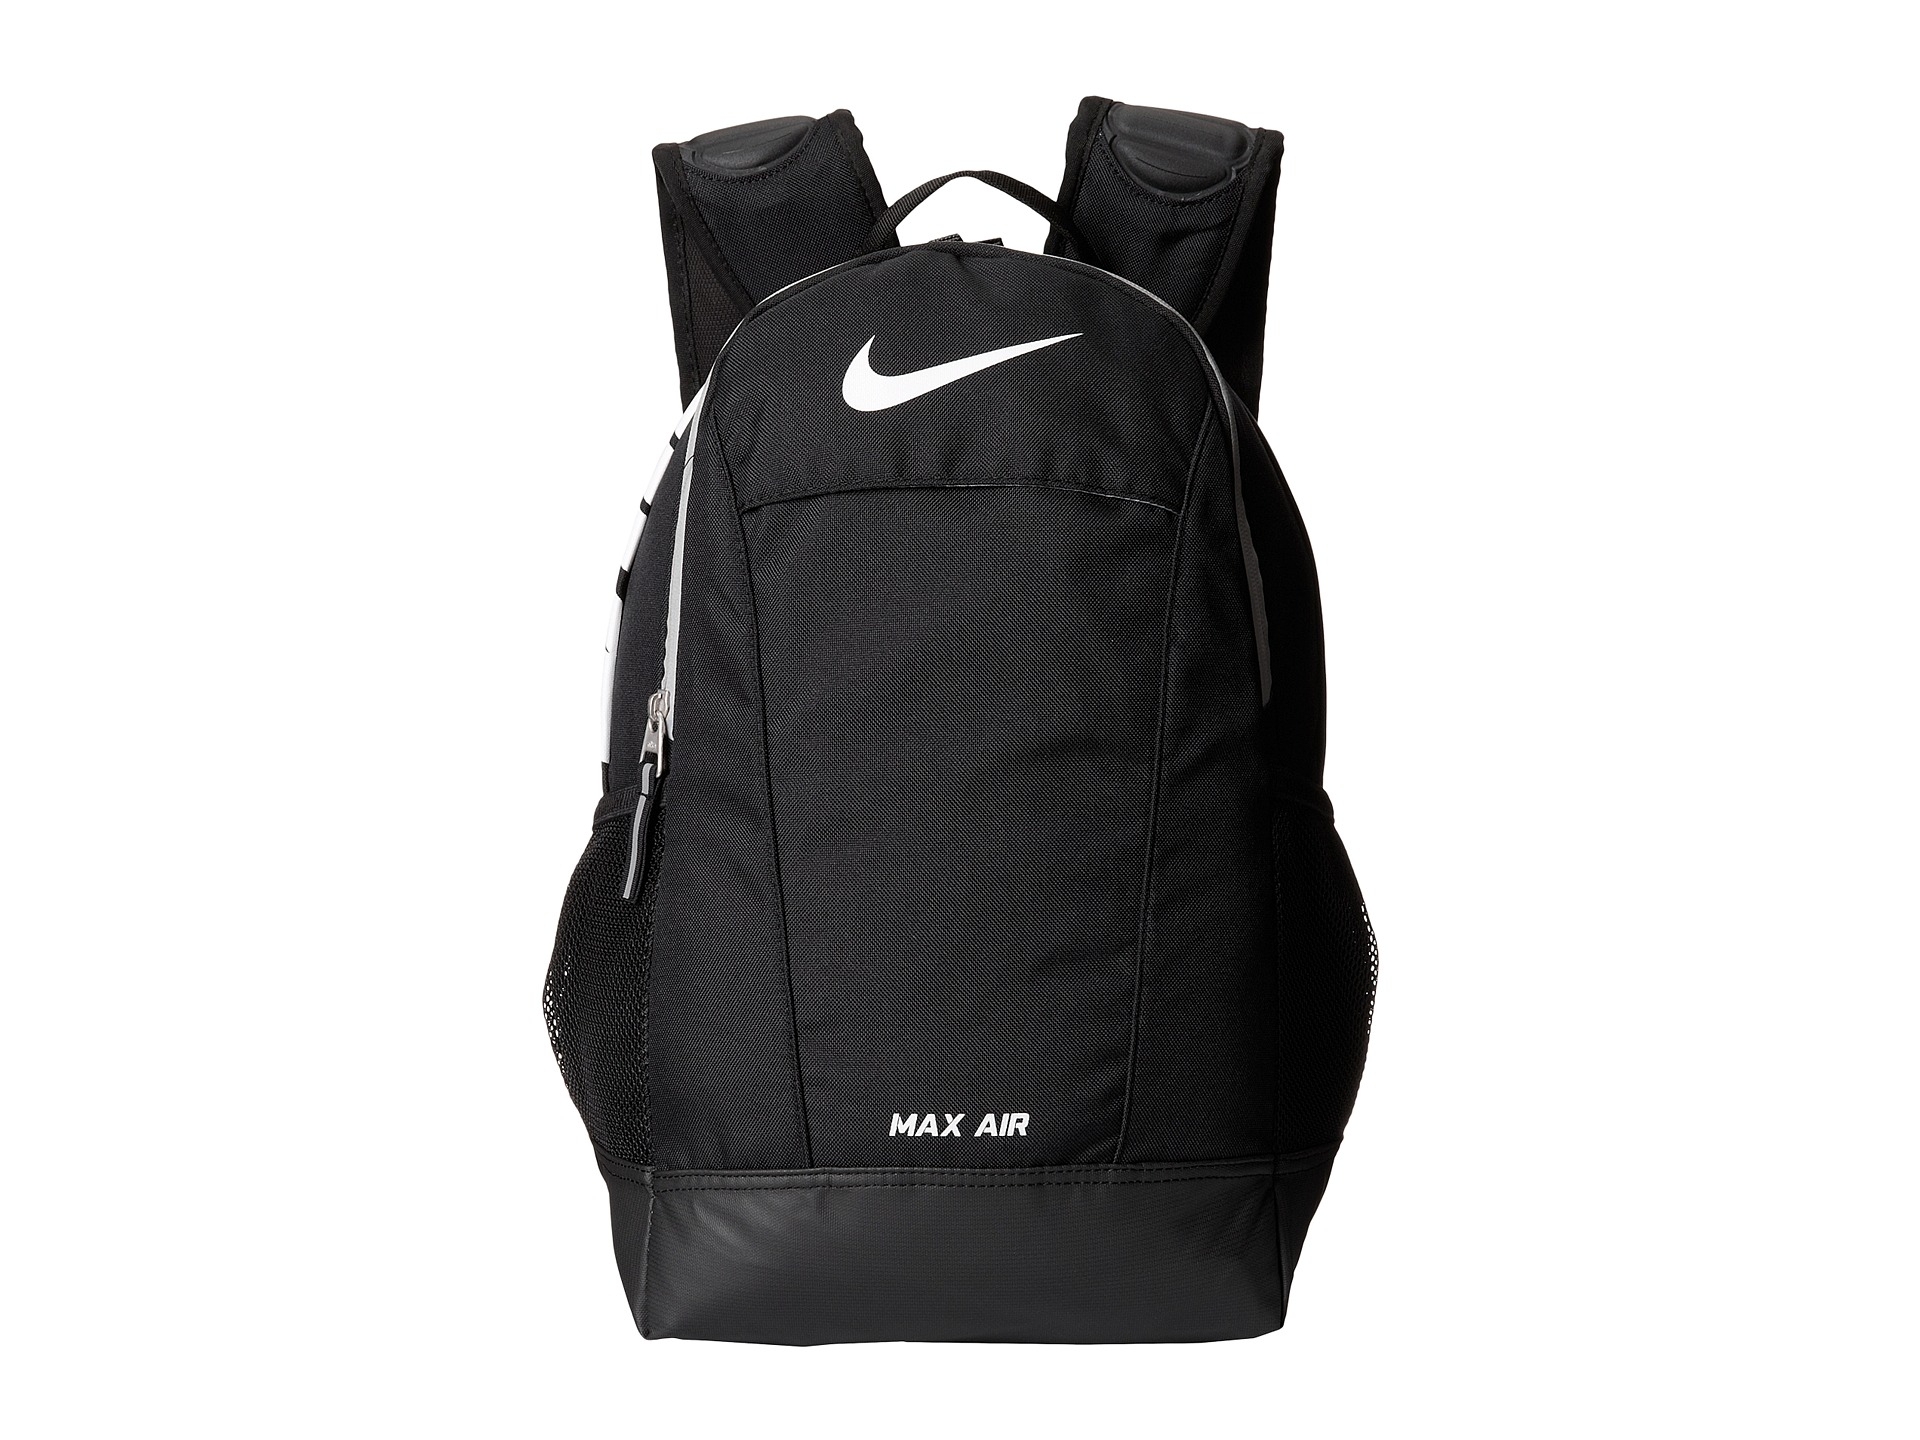 Lyst Nike Young Athlete Max Air Team Training Small